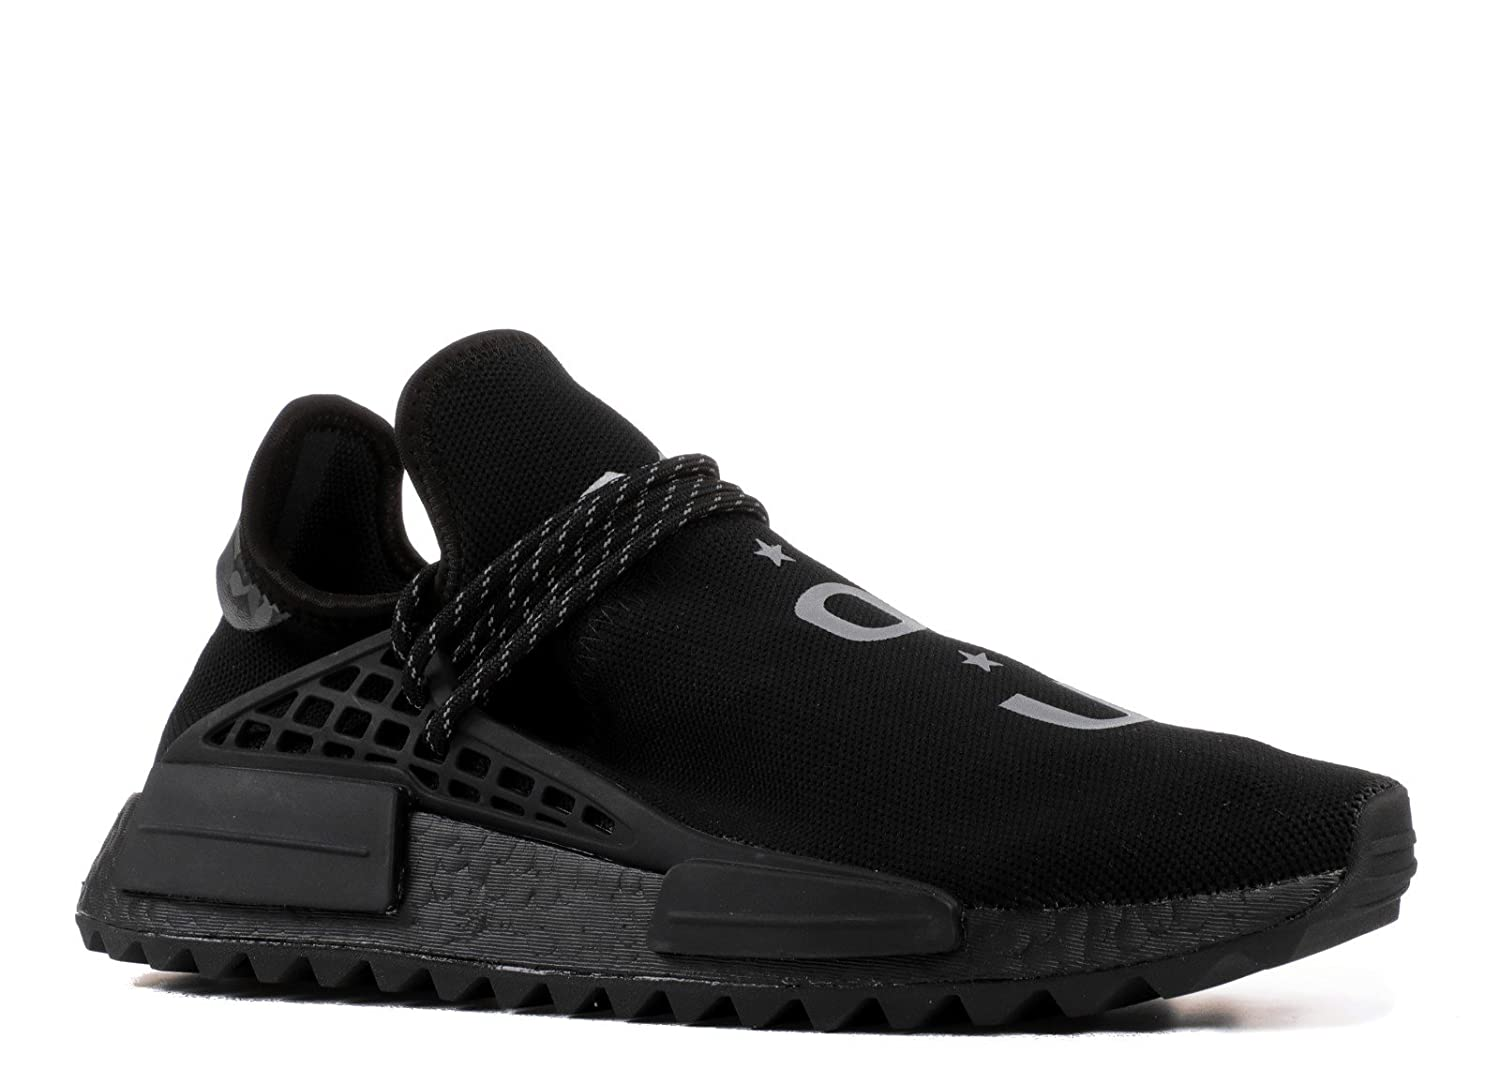 best loved 8f542 2c863 adidas PW Human Race NMD TR Black Size: 4 UK: Amazon.co.uk ...